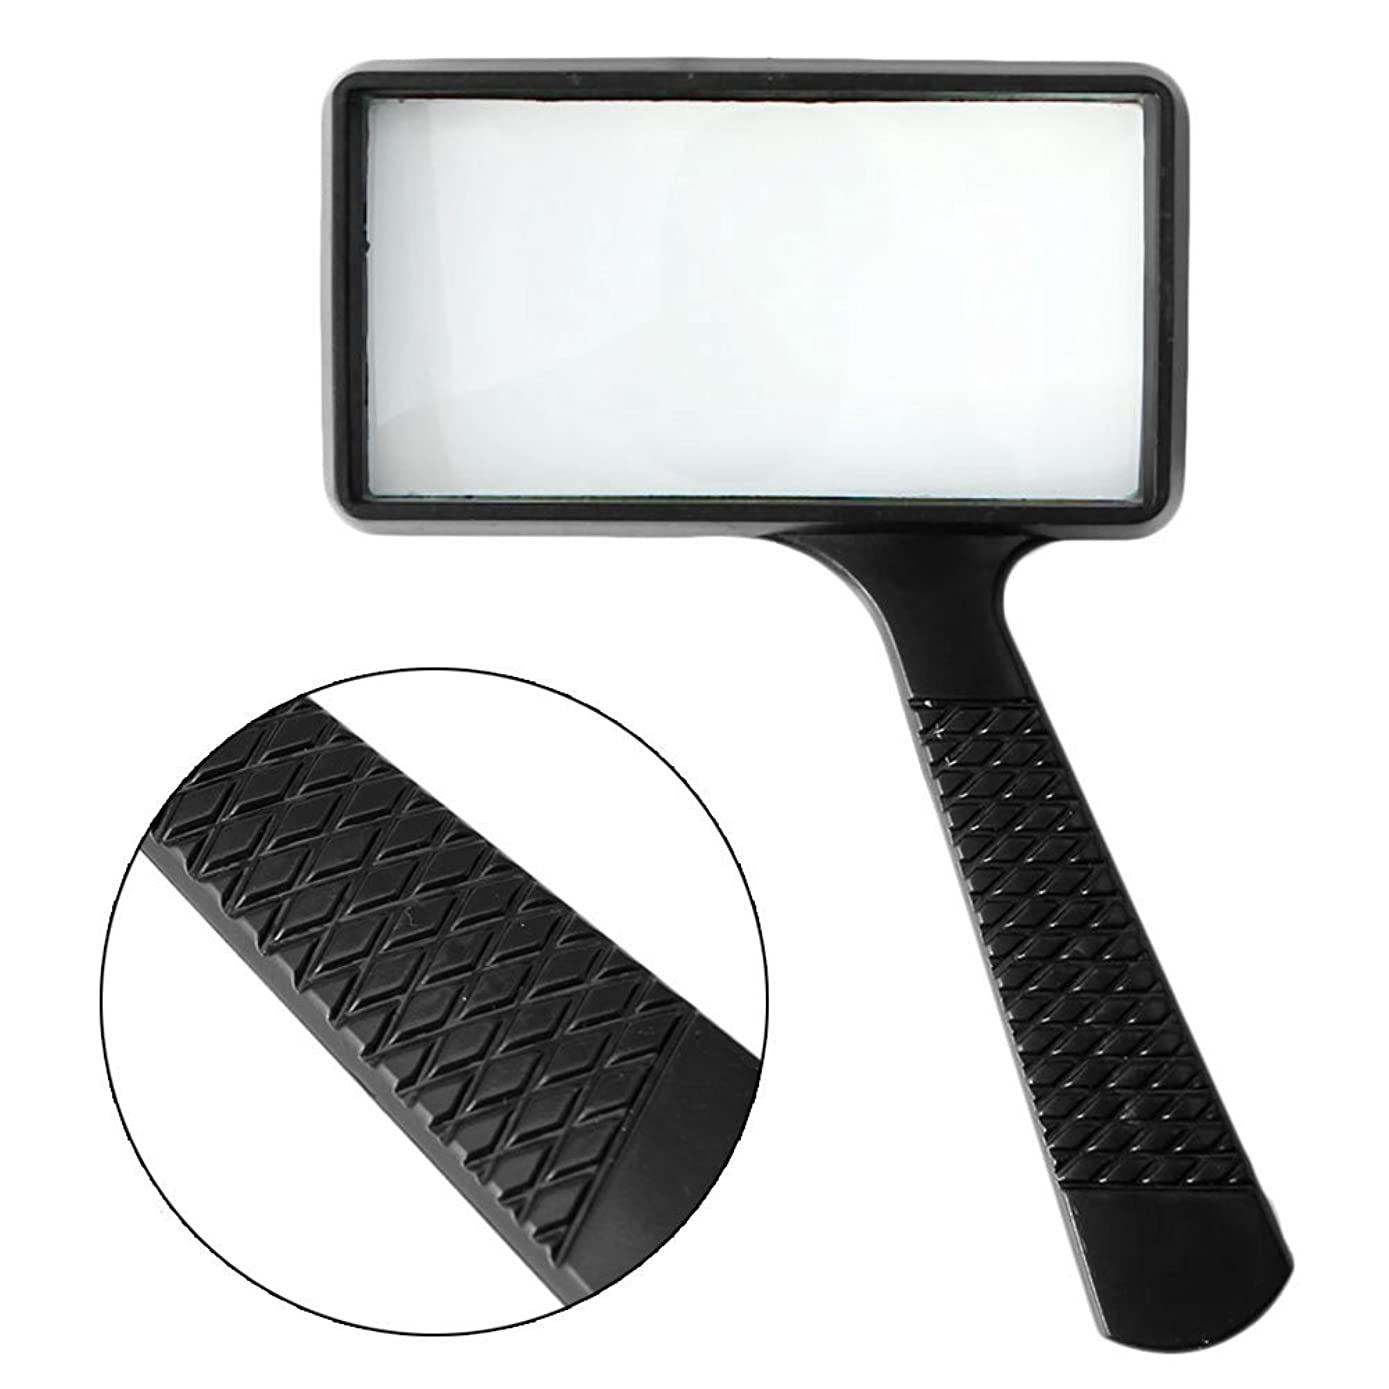 EA-STONE Portable Handheld Rectangular 3X Magnifier Magnifying Glass Loupe For Reading Jewelry